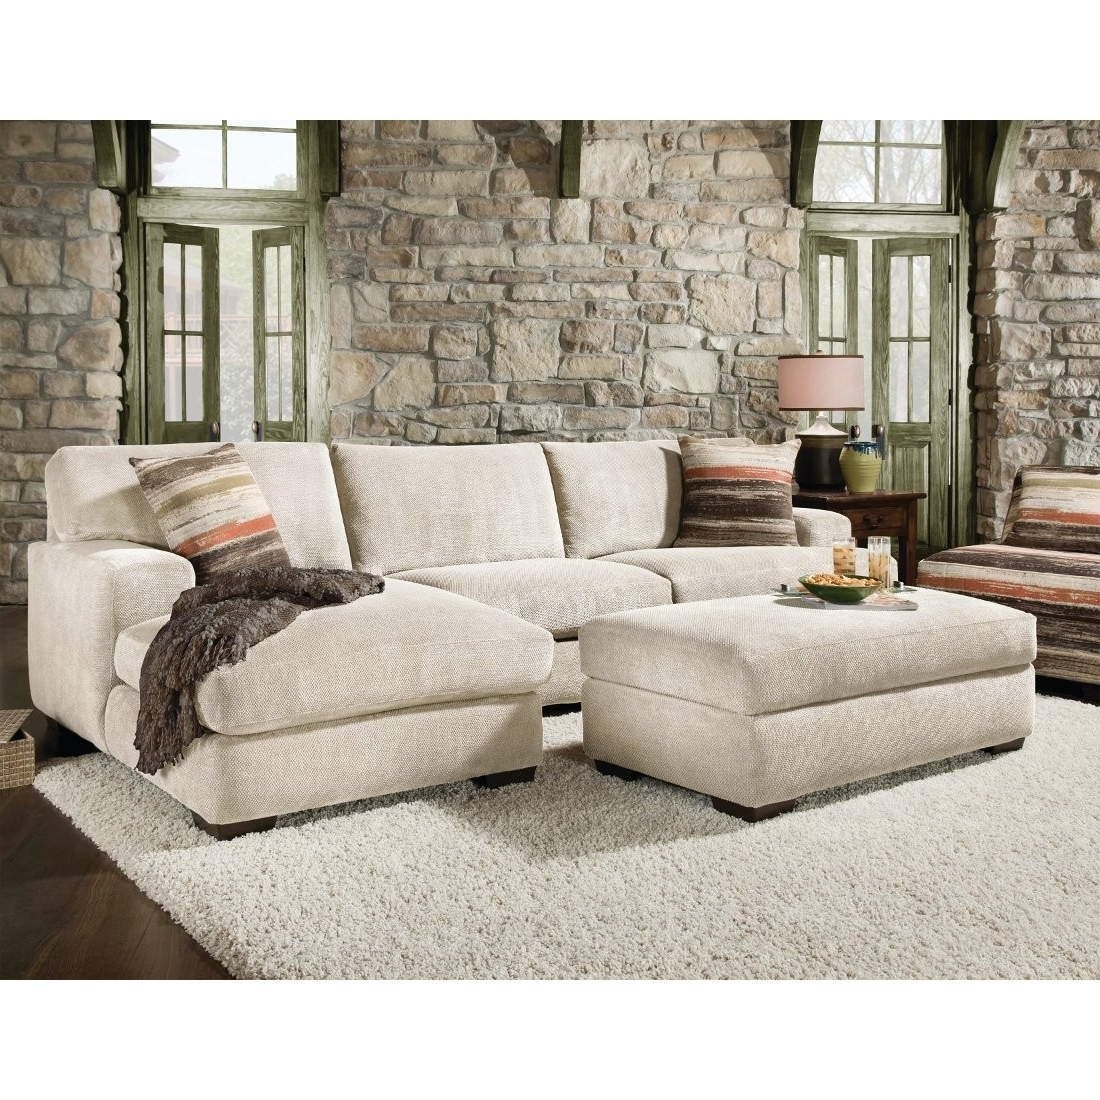 Conn's Throughout Sectional Sofas With Chaise Lounge (View 1 of 15)